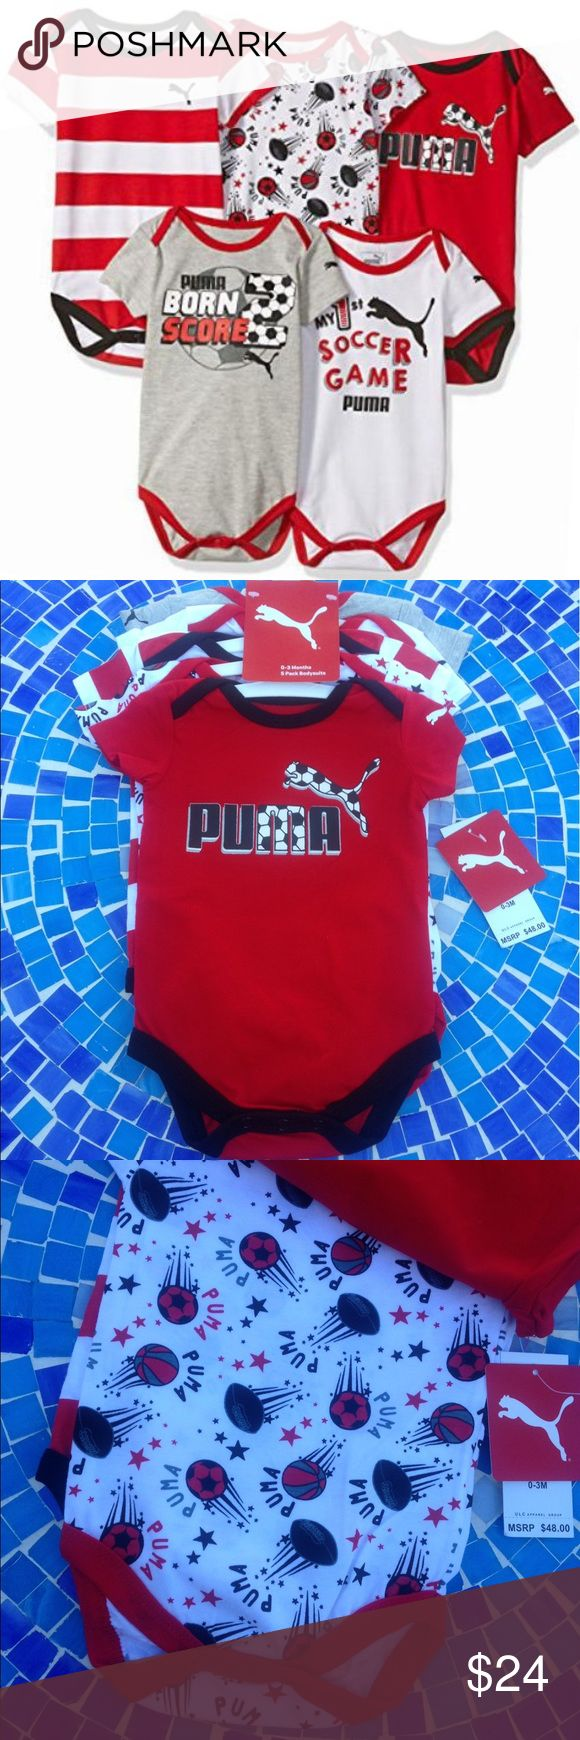 NEW!  Puma 5pk bodysuit/onzies 0-3M in fierce red Brand new, super soft PUMA onzies are super soft & so adorable, making them the ideal gift for a mom-to-be or new mom!  These little bodysuits are invaluable in the first months & will literally become their uniform, as they conveniently unsnap, allowing for ease of diaper changing!  They are brand new, never worn with tags attached & retail at $48!  No trades please. Puma One Pieces Bodysuits